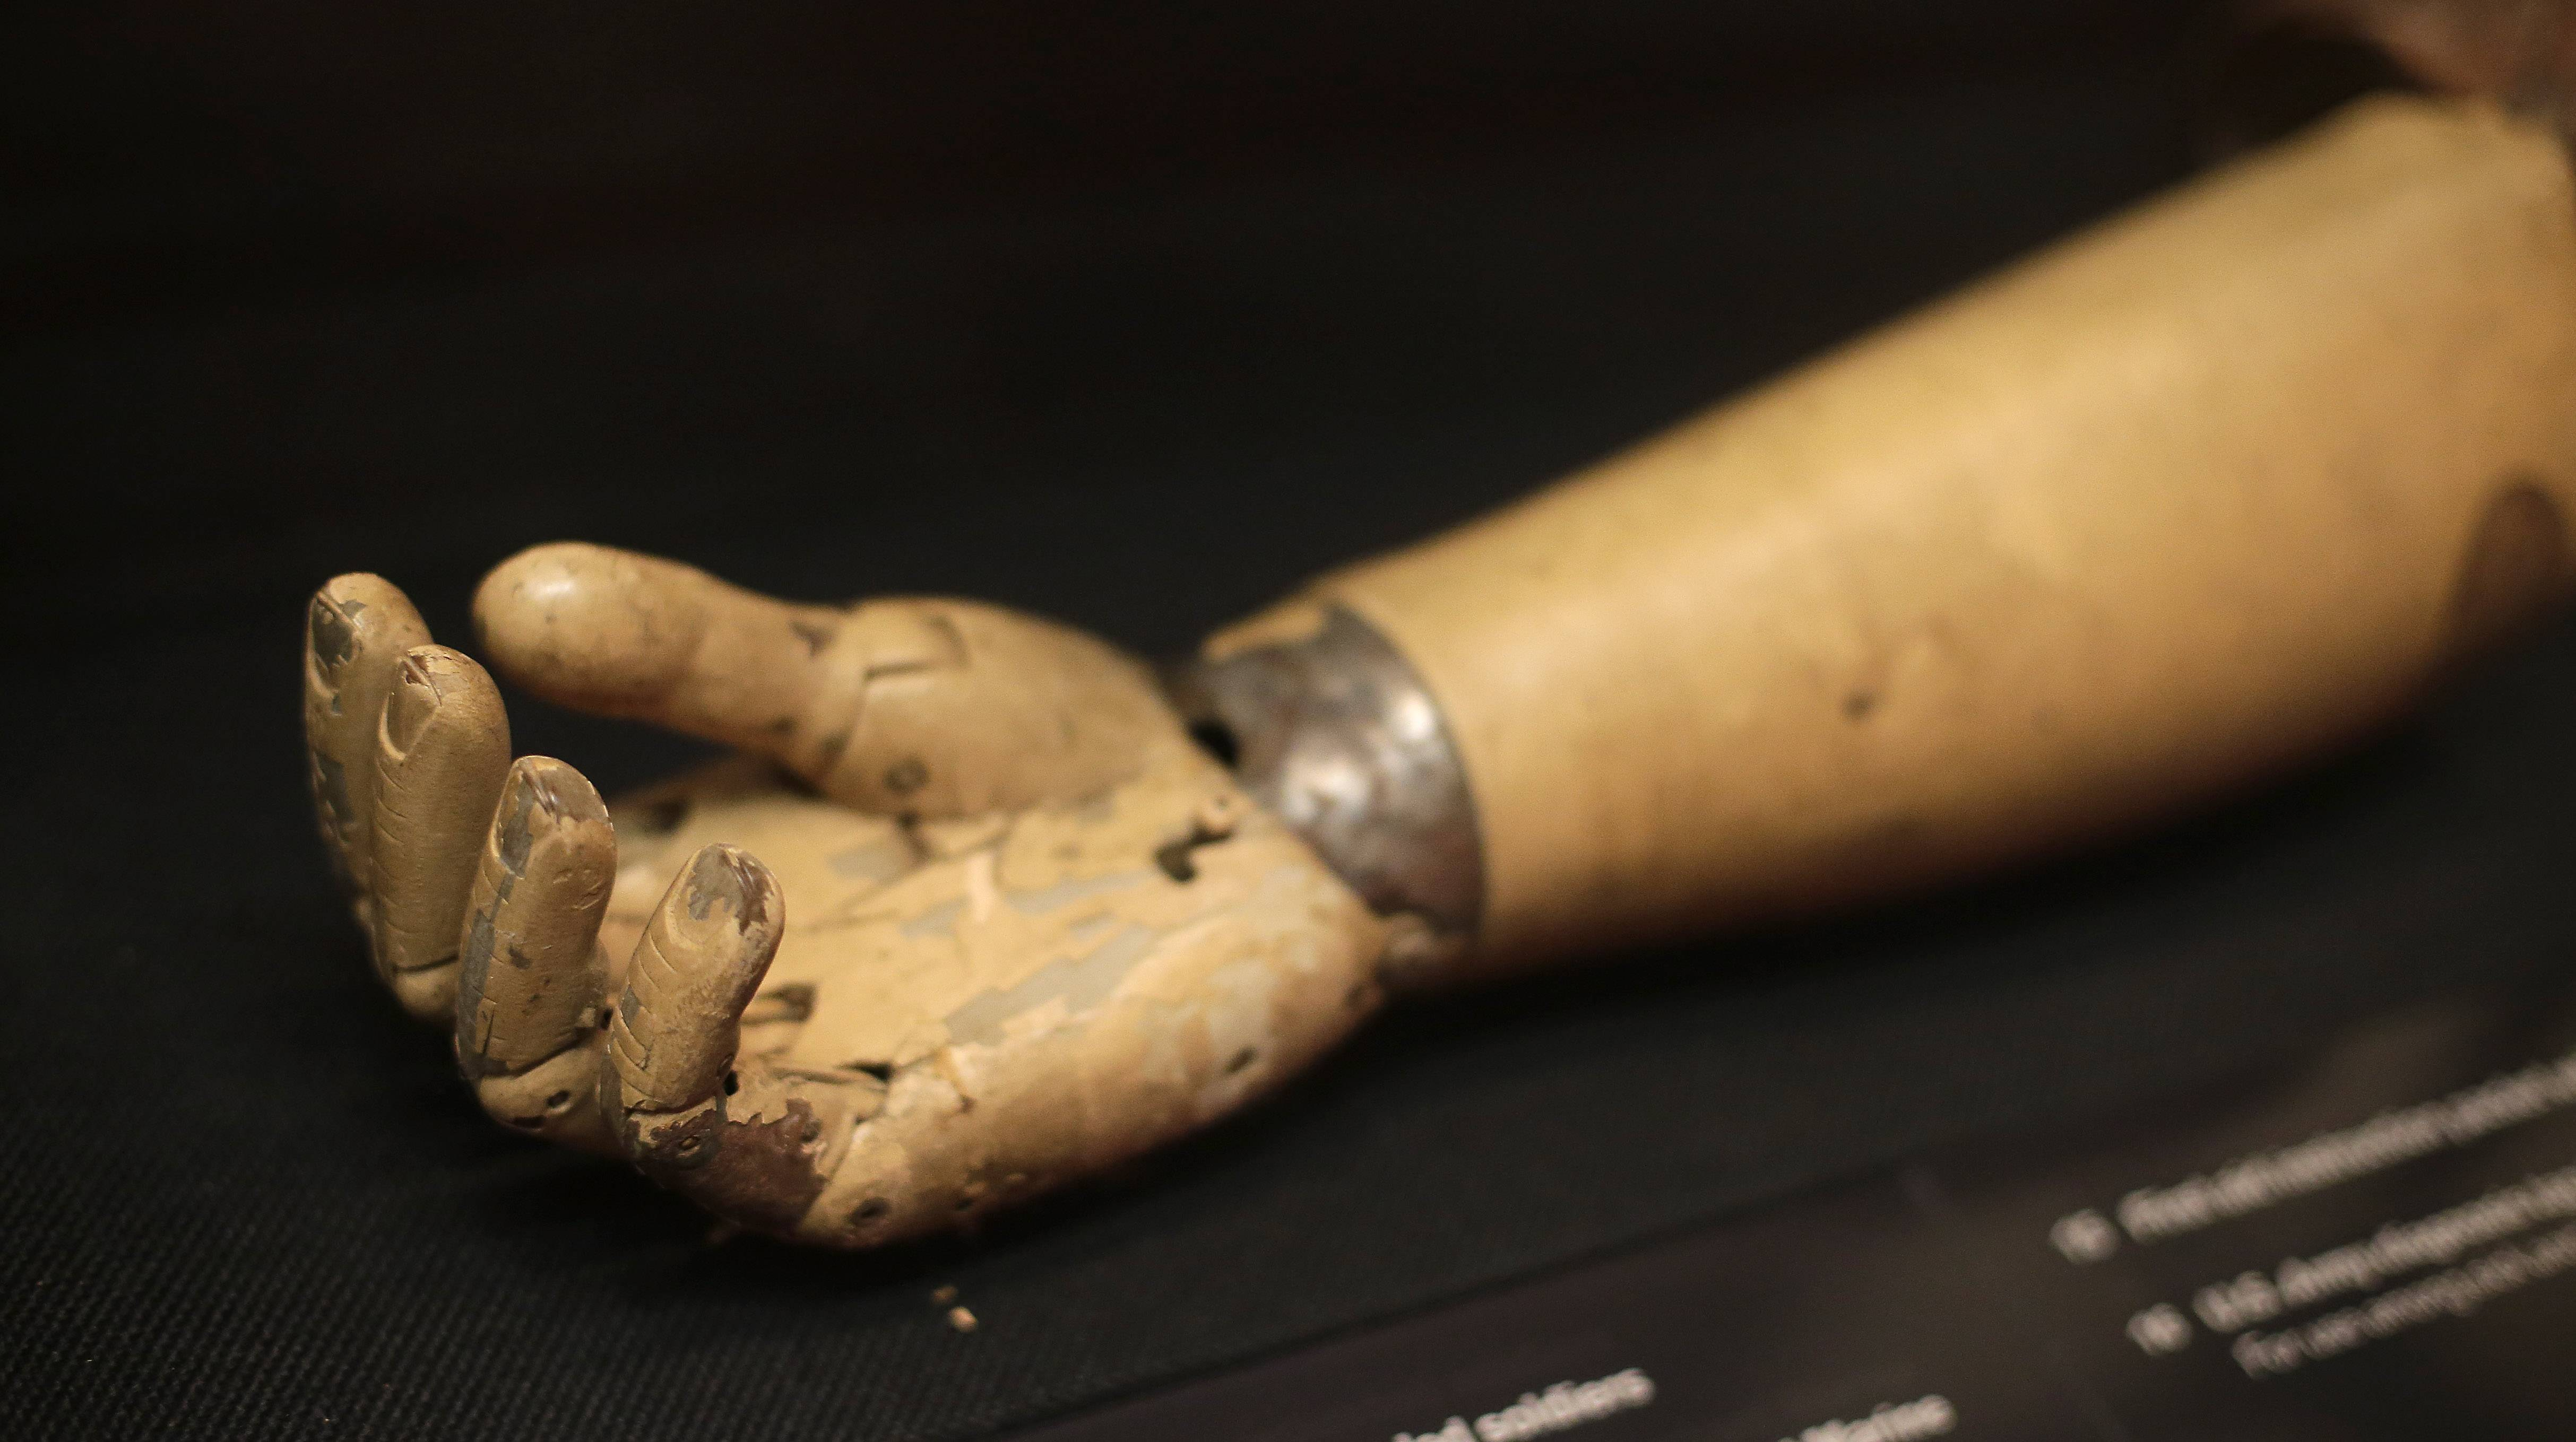 A prosthetic right arm issued to a wounded American soldier is on display at Kansas City's National World War I Museum.